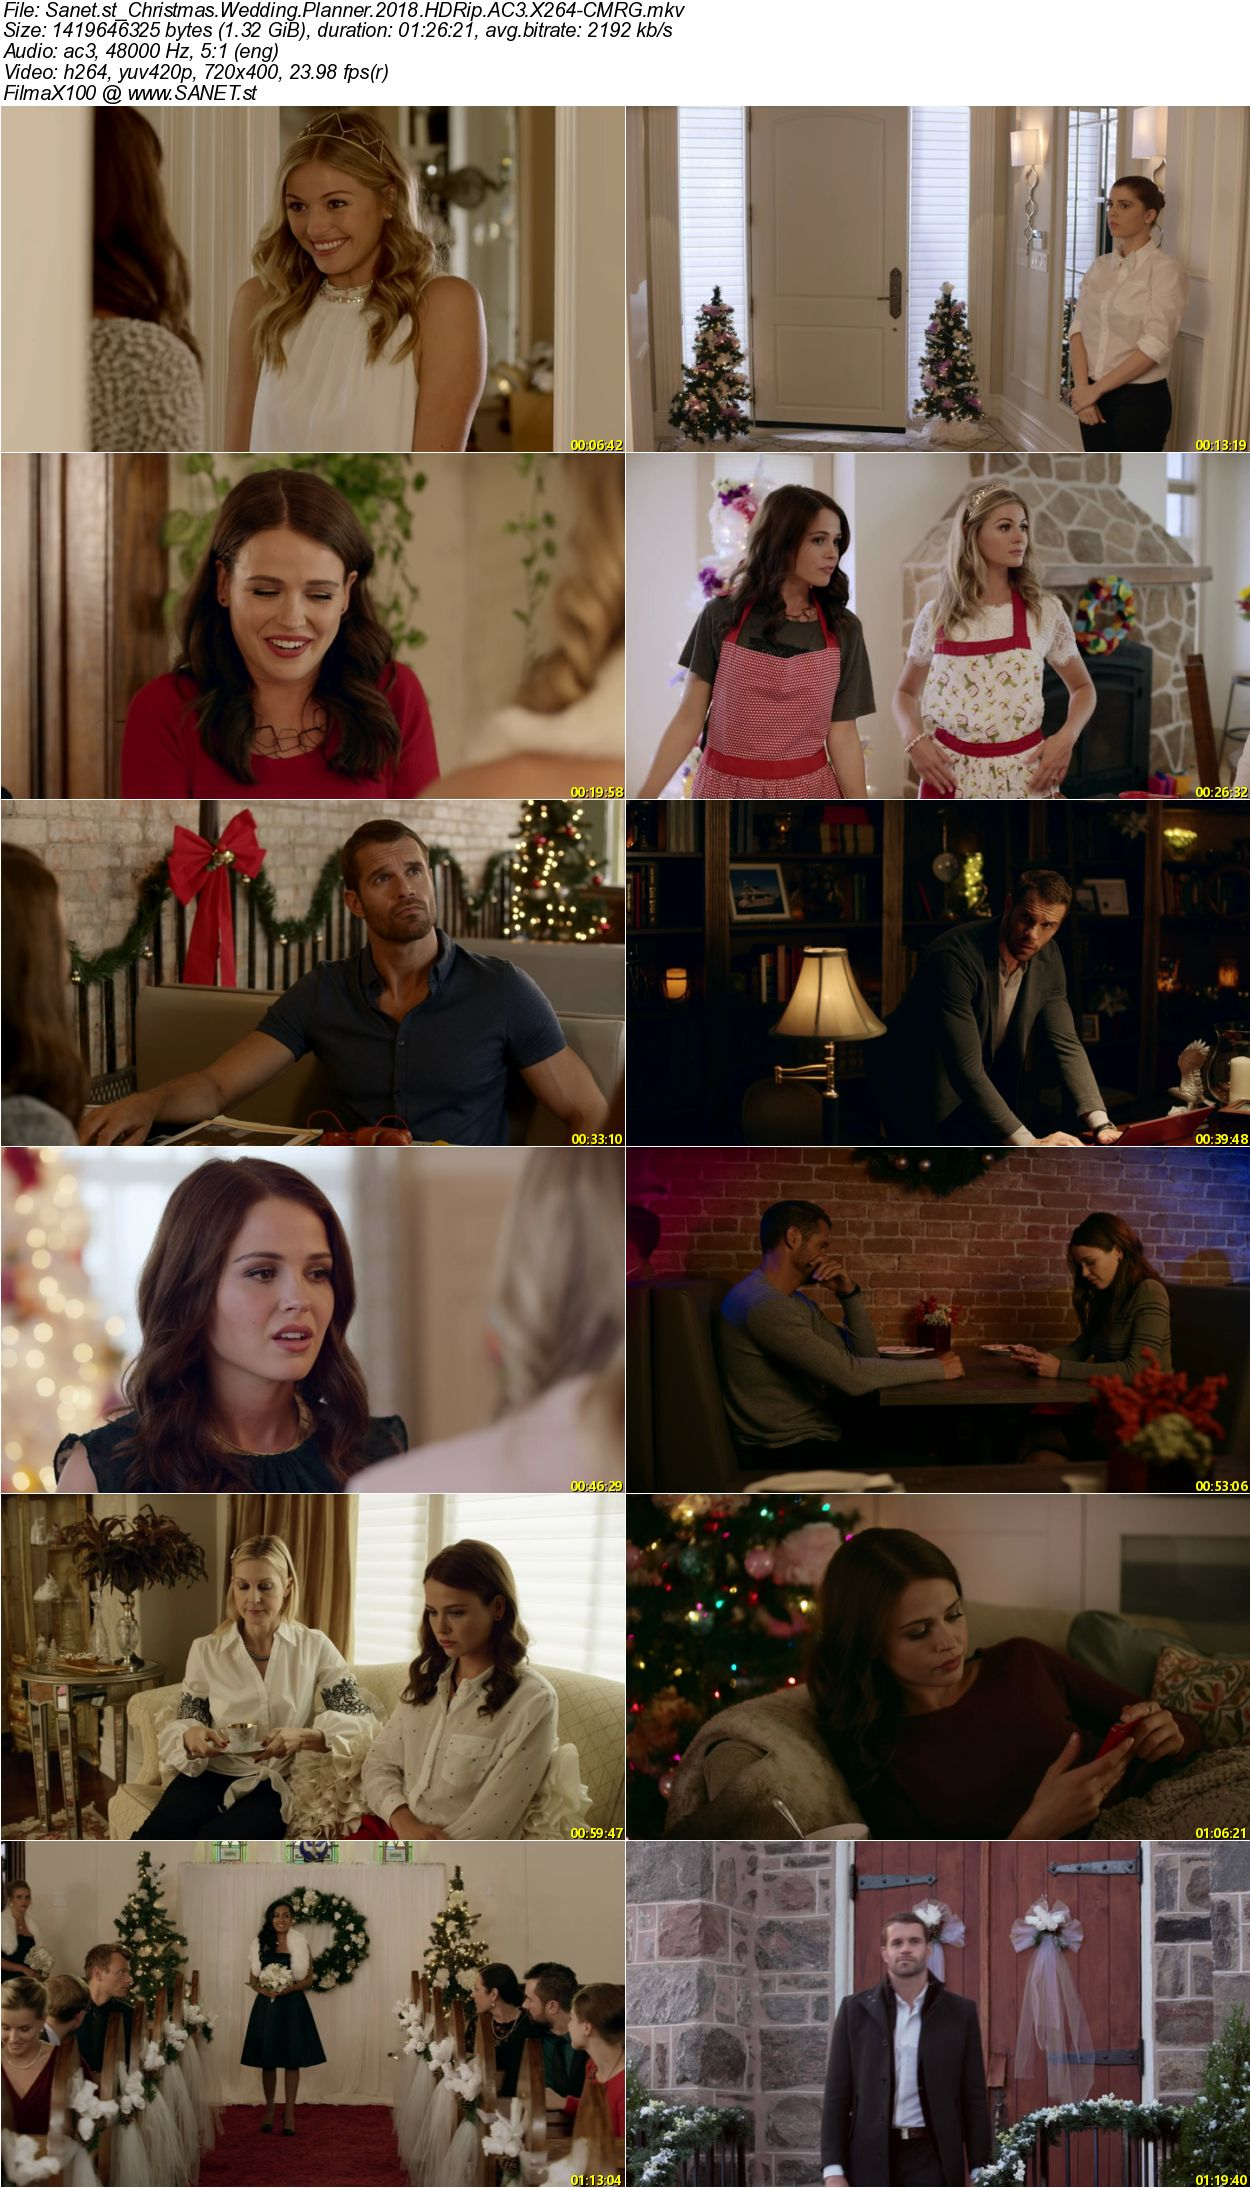 Download Christmas Wedding Planner 2018 Hdrip Ac3 X264 Cmrg